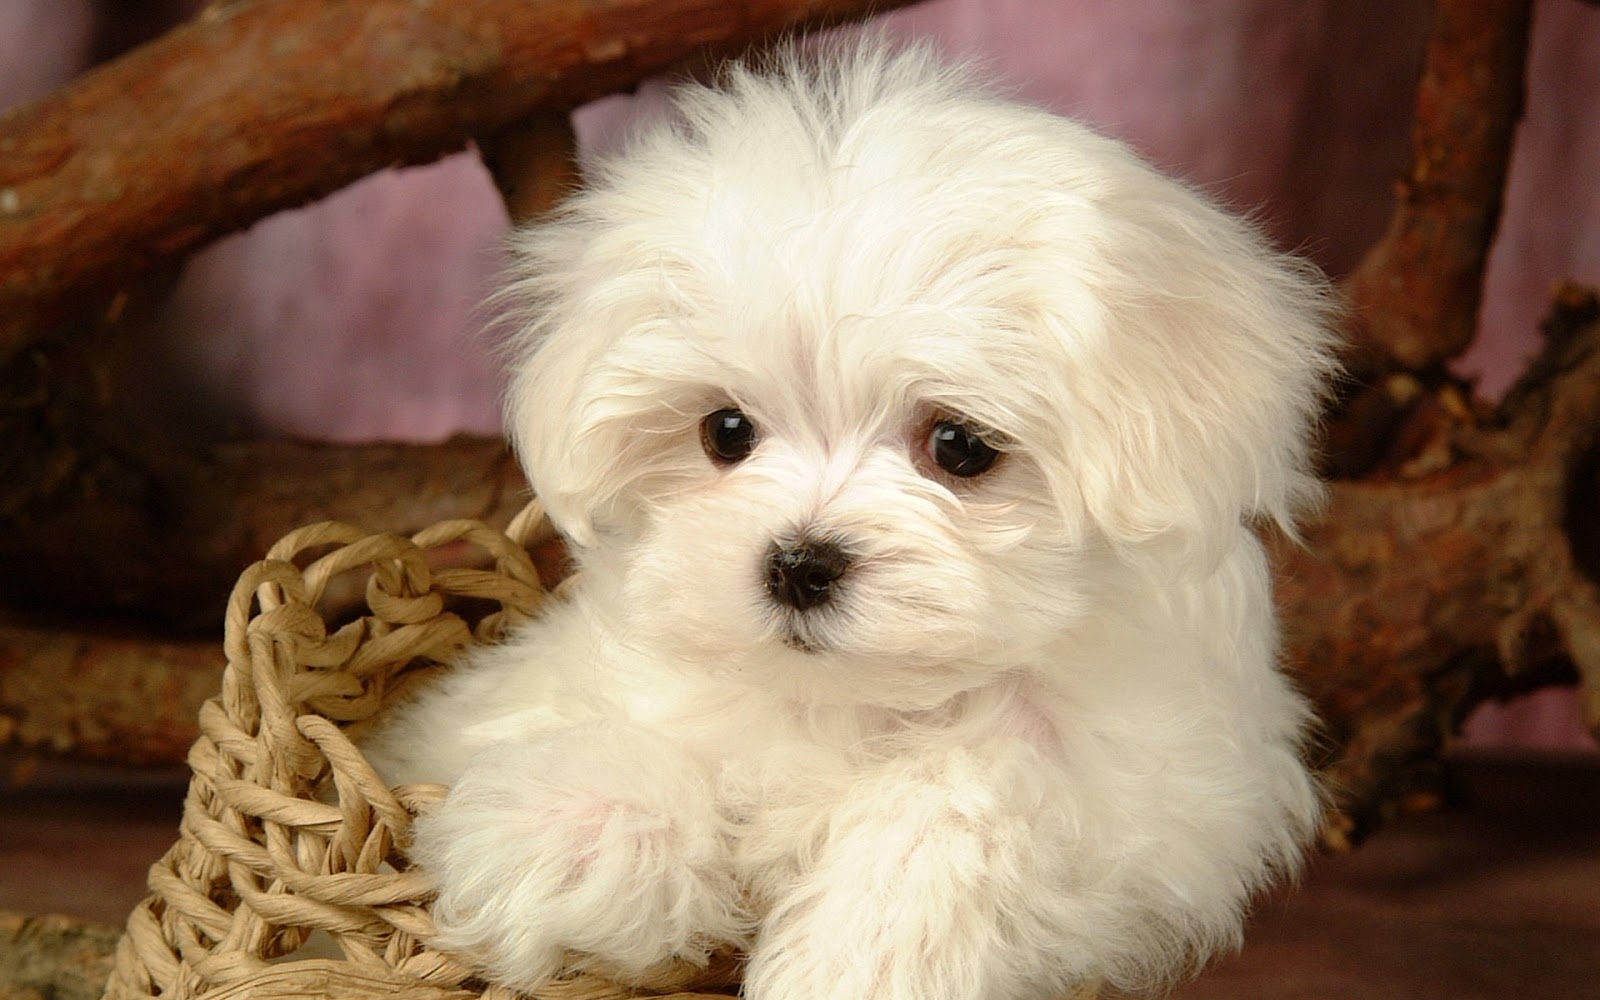 What does a lhasa apso look like